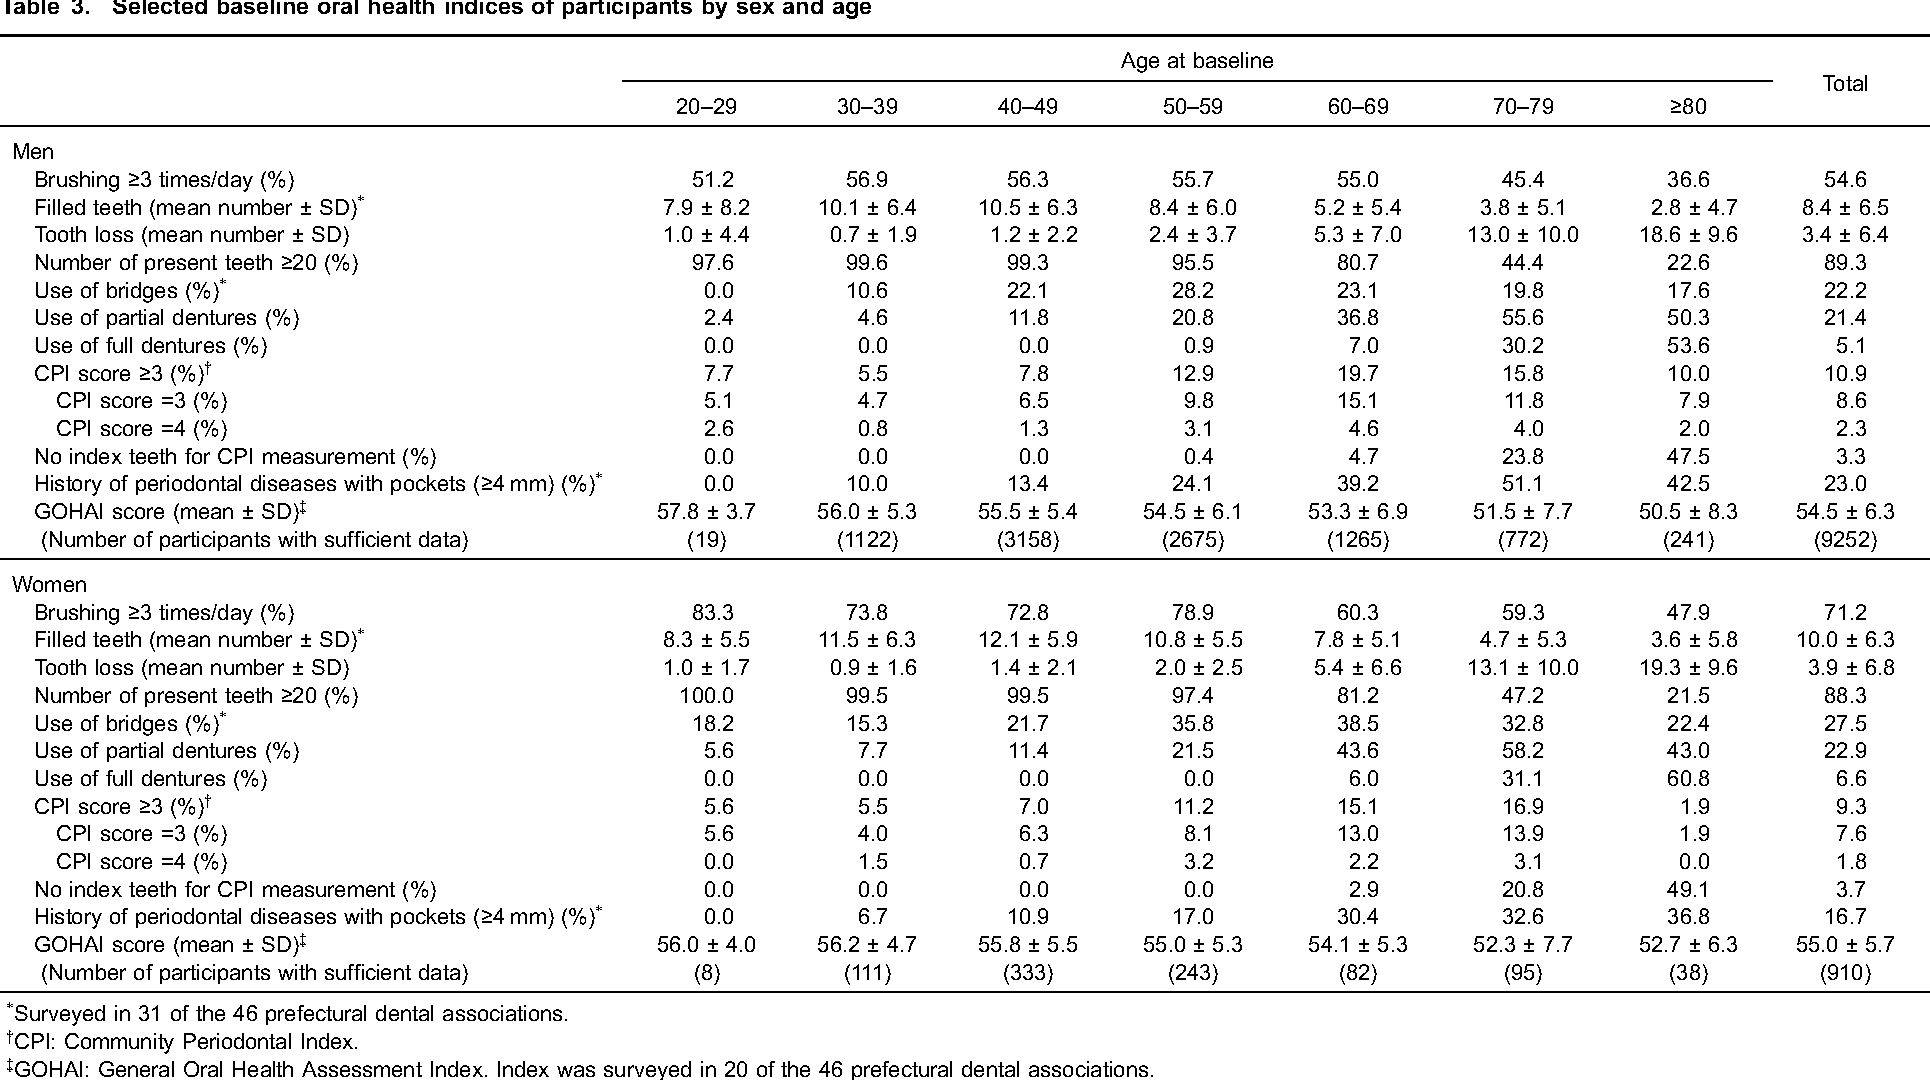 Table 3. Selected baseline oral health indices of participants by sex and age